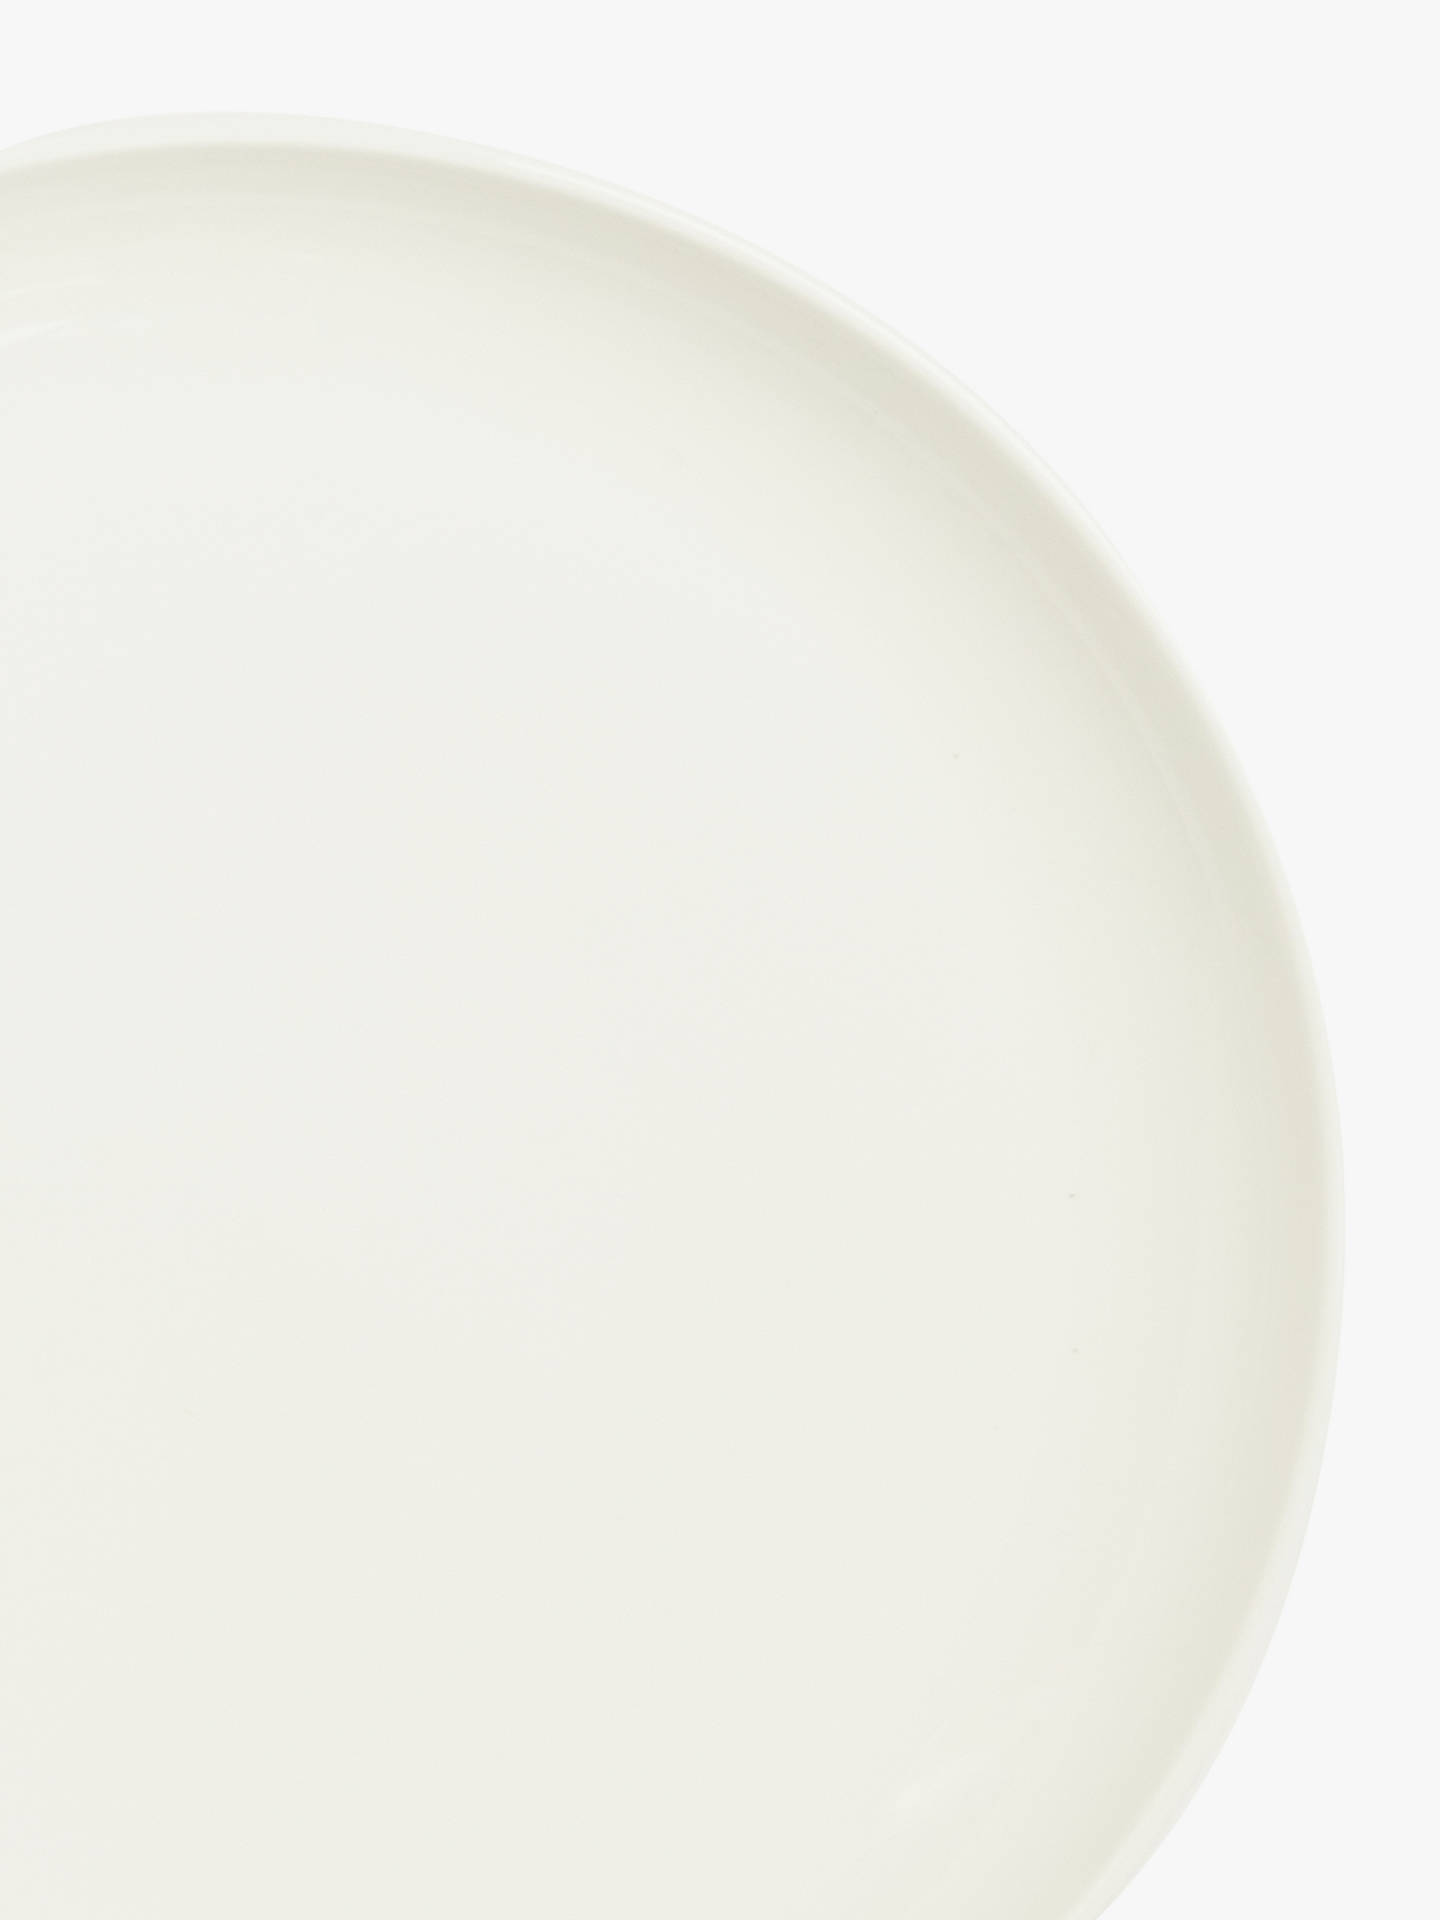 BuyJohn Lewis & Partners Contour Bone China Small Side Plate, White, Dia.18cm Online at johnlewis.com